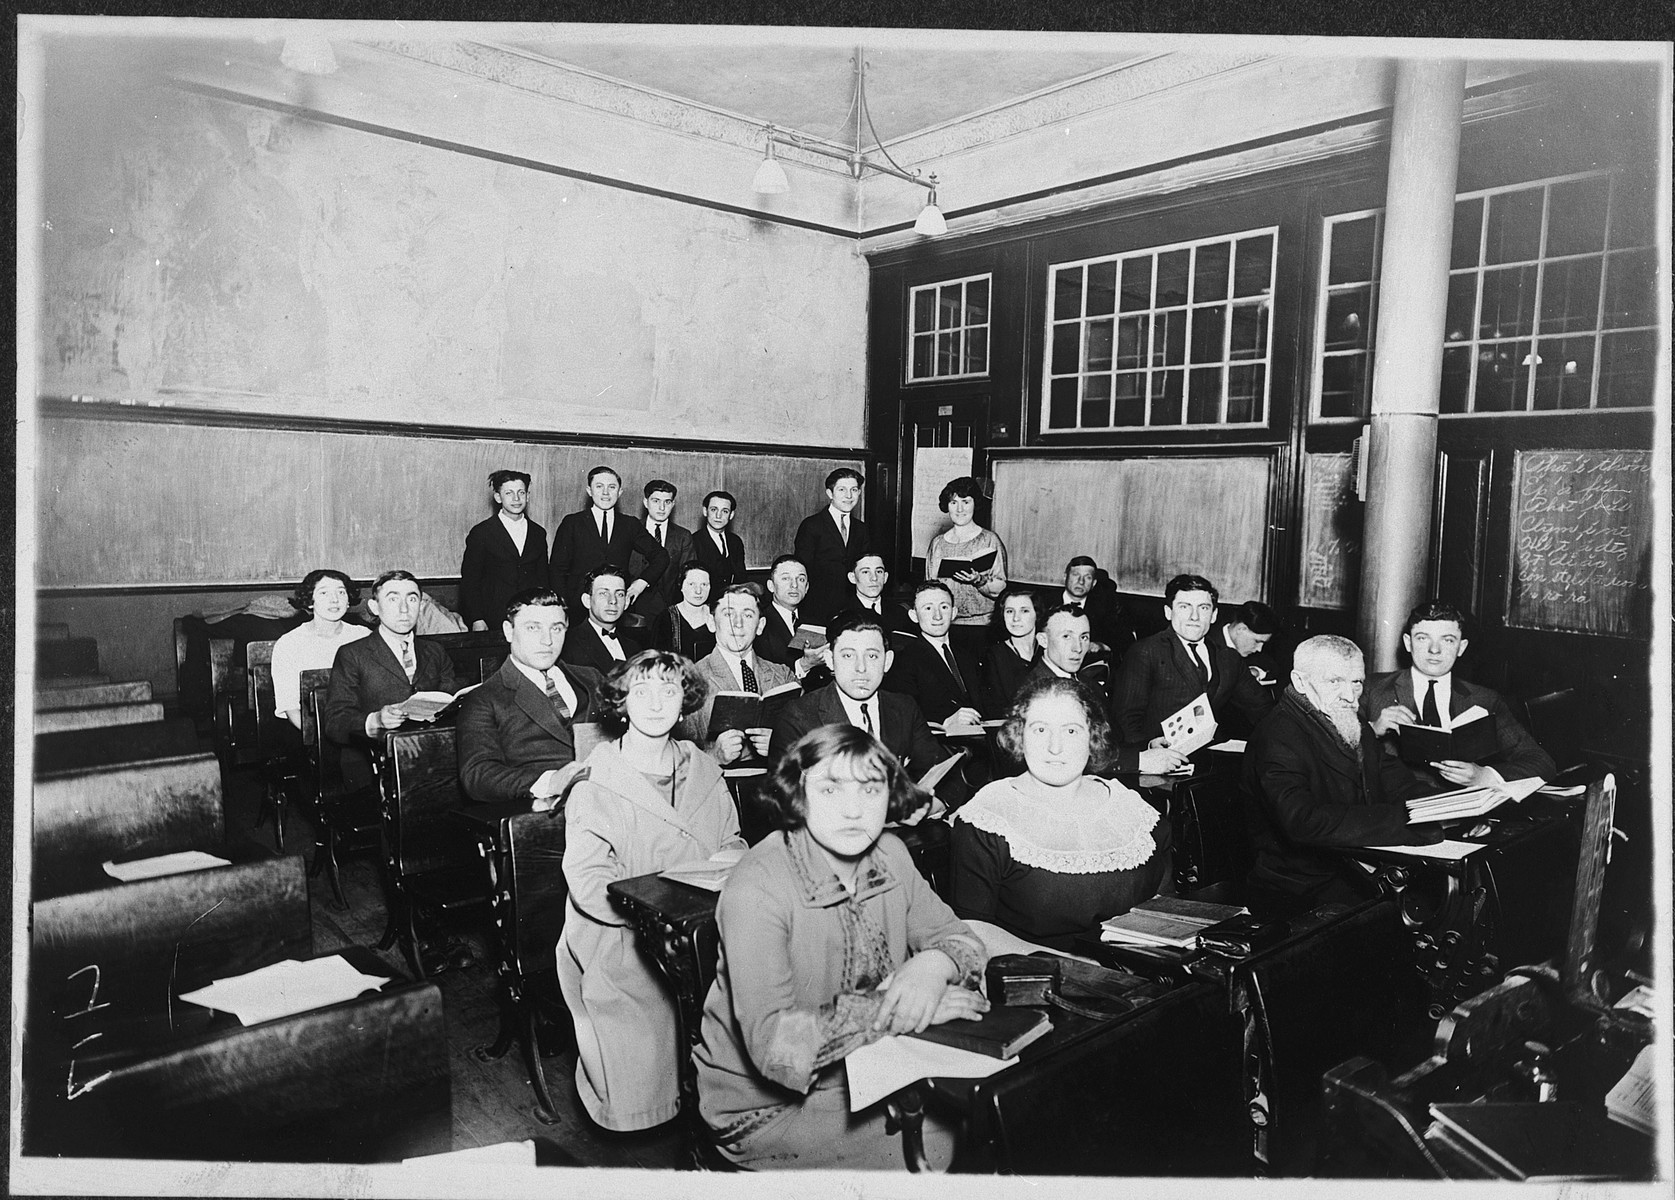 Group portrait of students in an English class in Kamenetz-Podolsk.  Isidor Weiss (Itzik Vortzel) is pictured in the third row, second from the left.